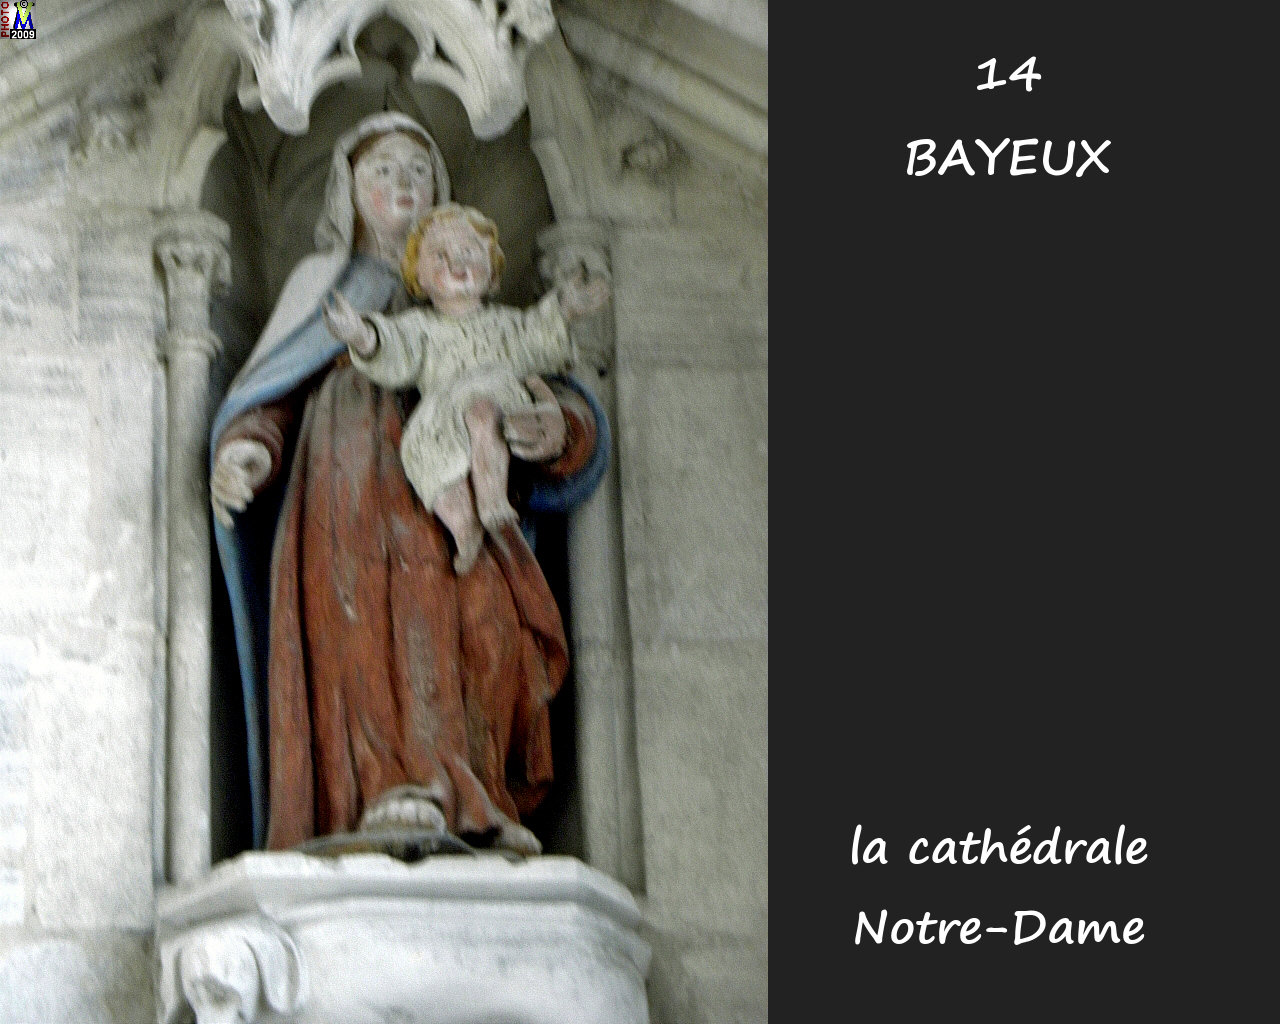 14BAYEUX_cathedrale_258.jpg